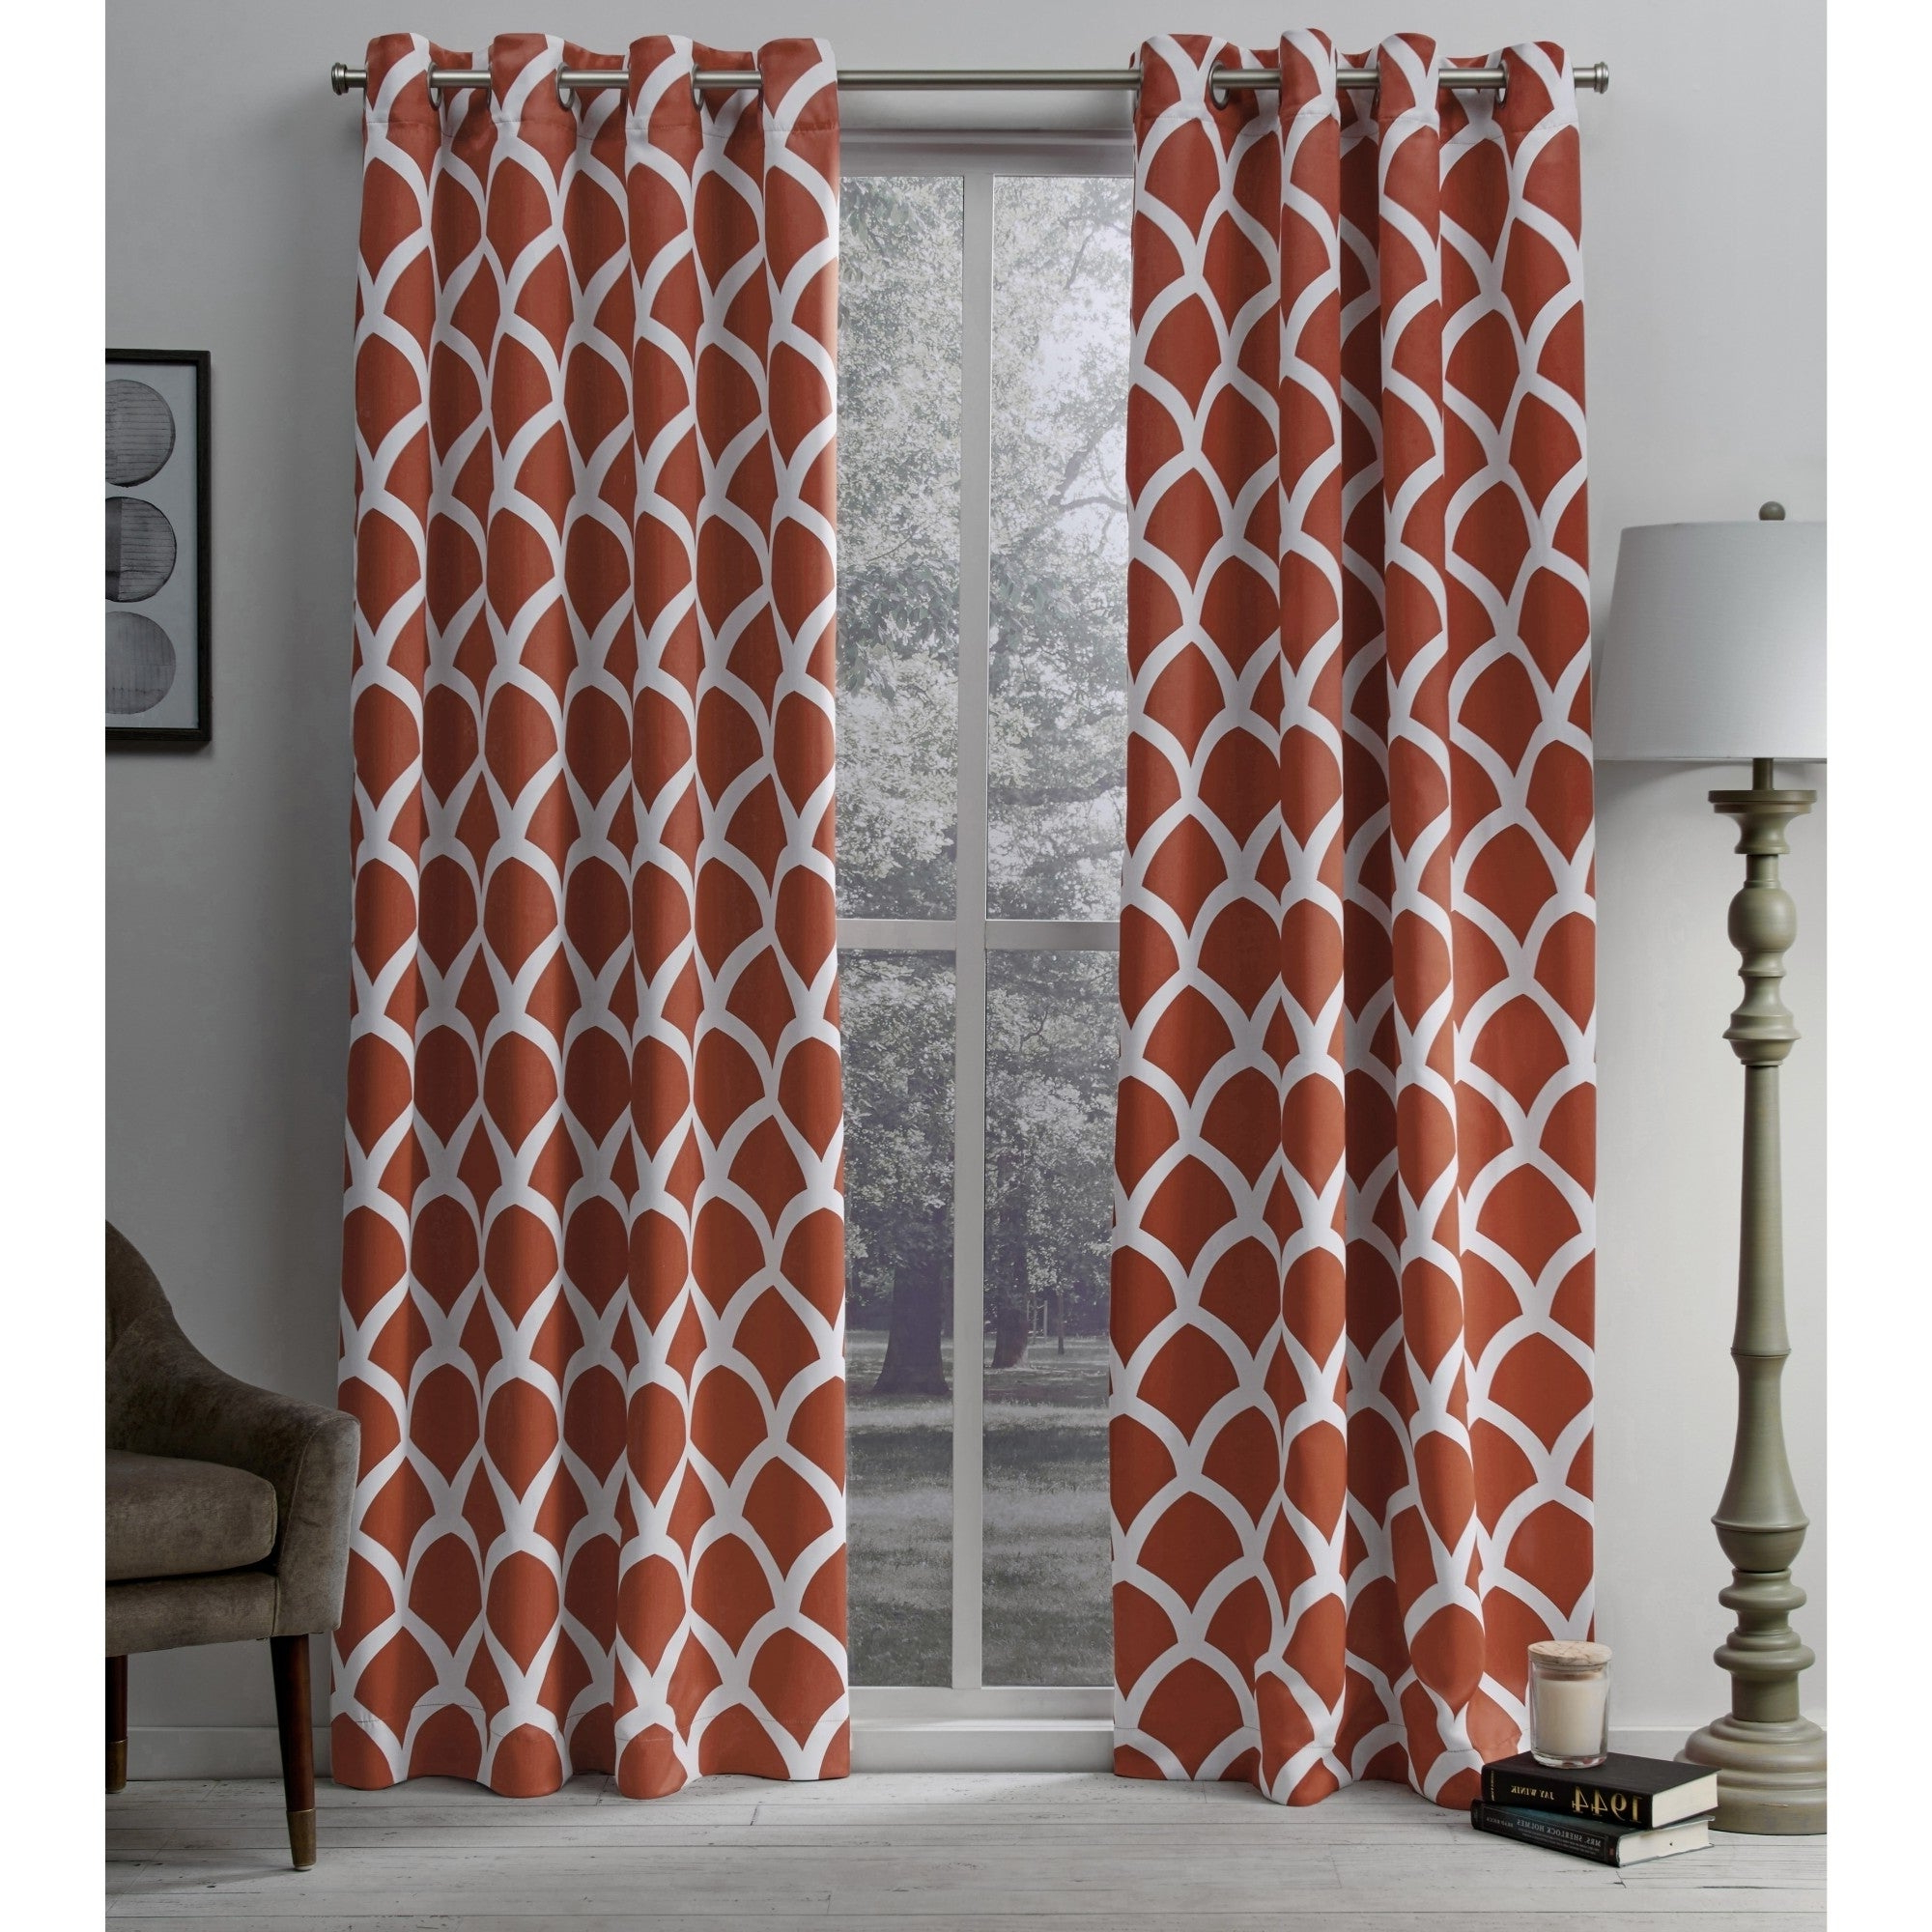 2020 Sateen Woven Blackout Curtain Panel Pairs With Pinch Pleat Top Intended For The Curated Nomad Ames Sateen Woven Blackout Grommet Top Curtain Panel Pair (View 15 of 20)